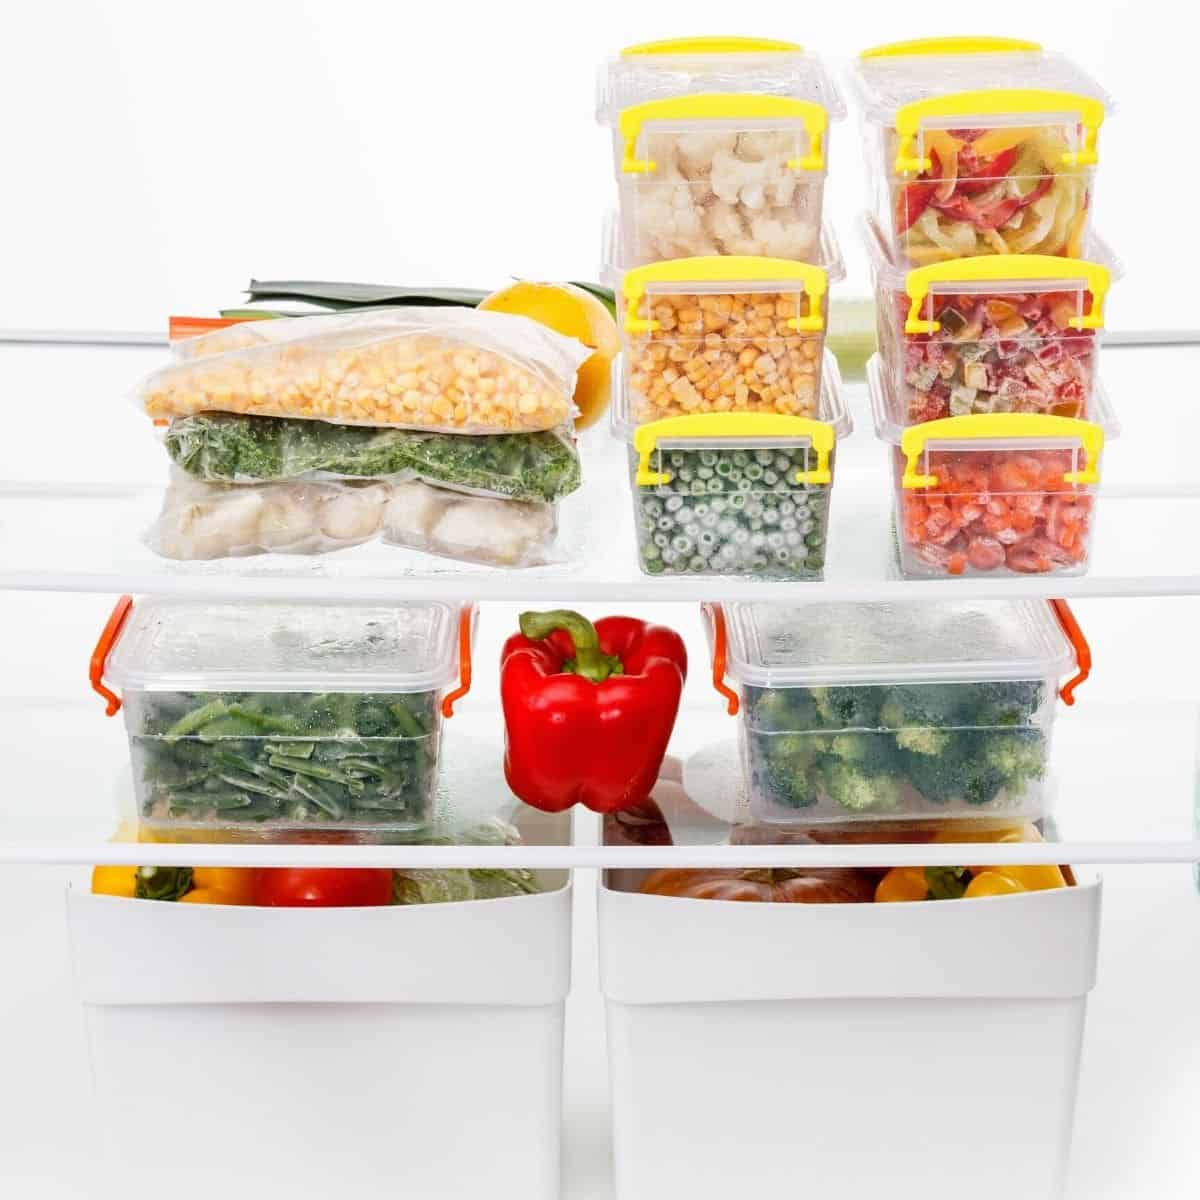 meal ingredients in a freezer